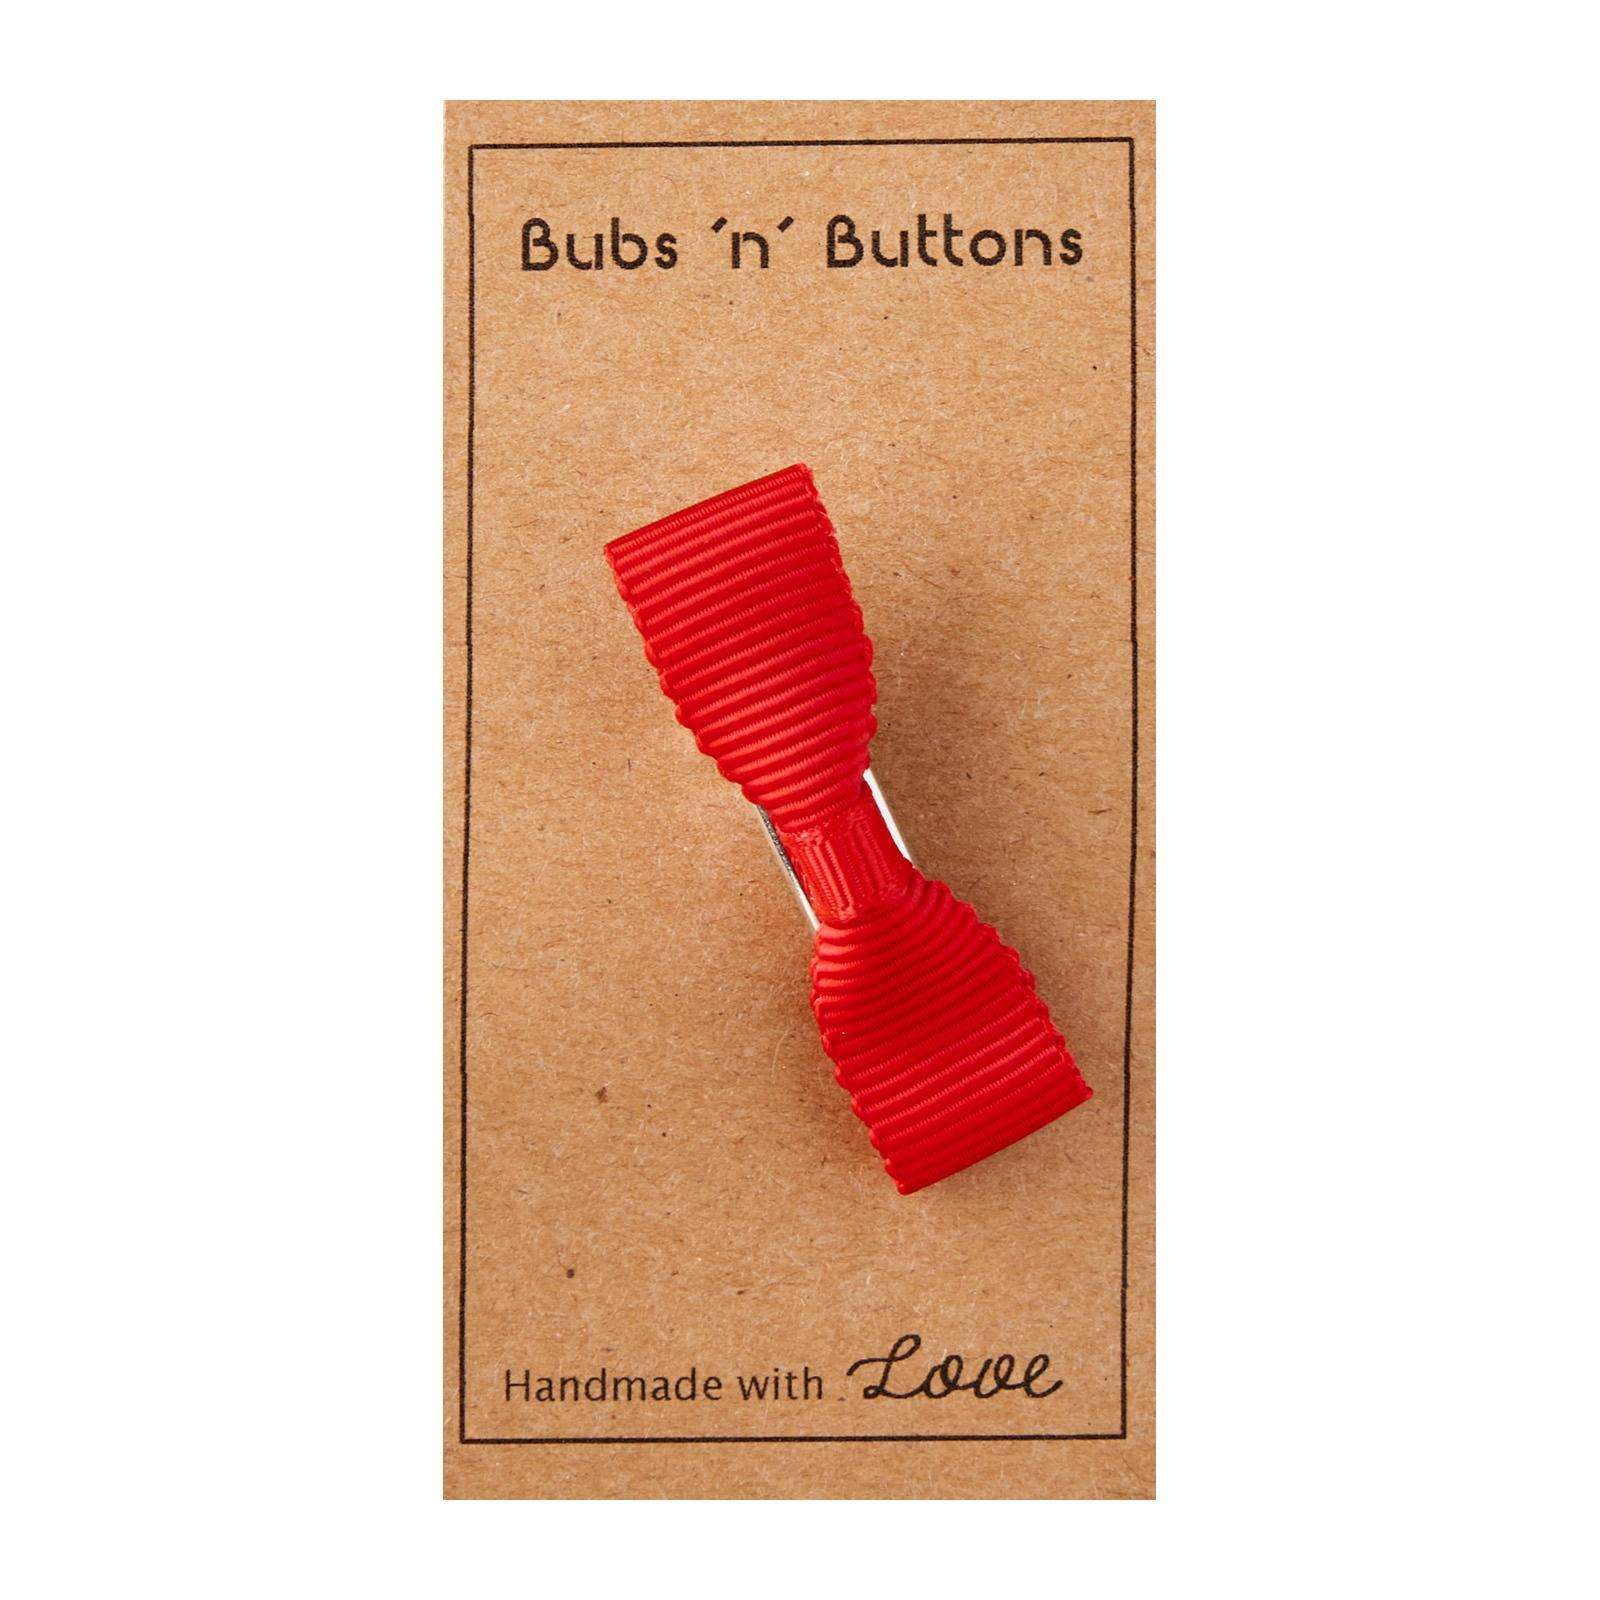 Bubs 'n' Buttons Simply Posh Clippers